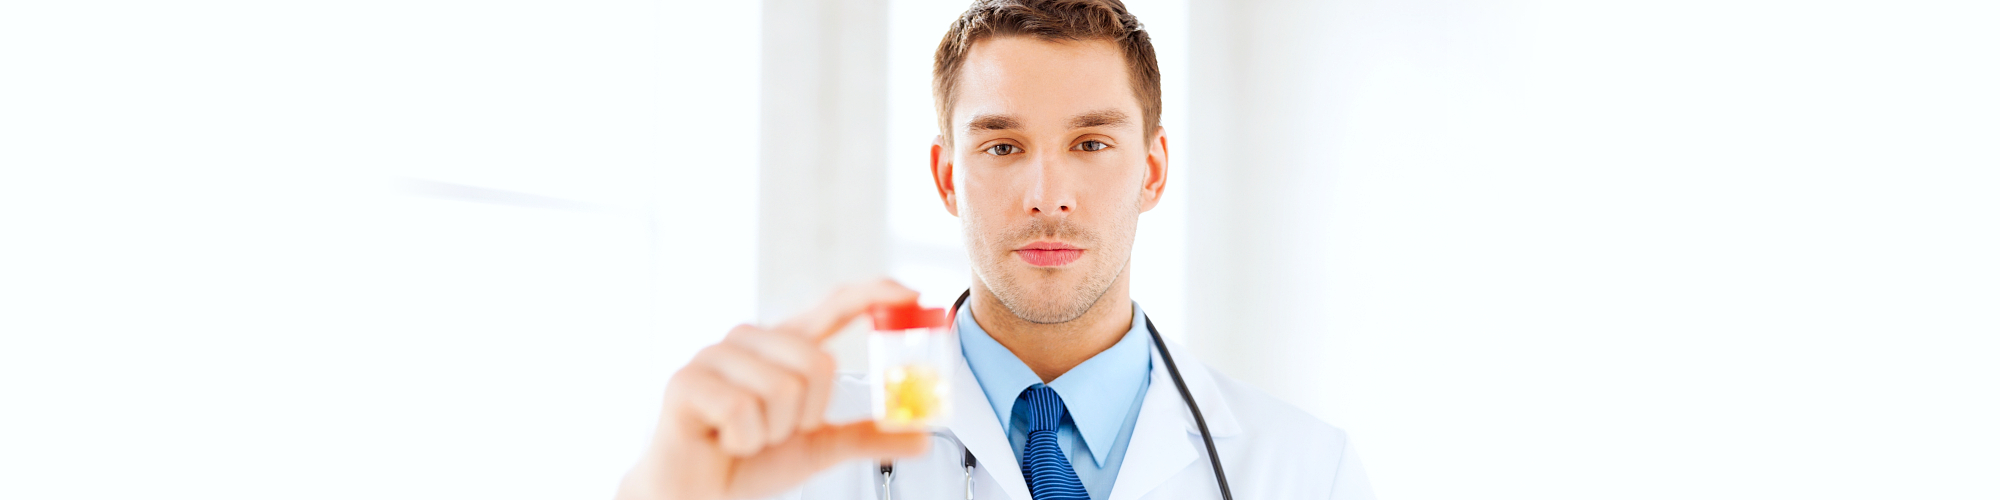 doctor looking at camera while holding medicine